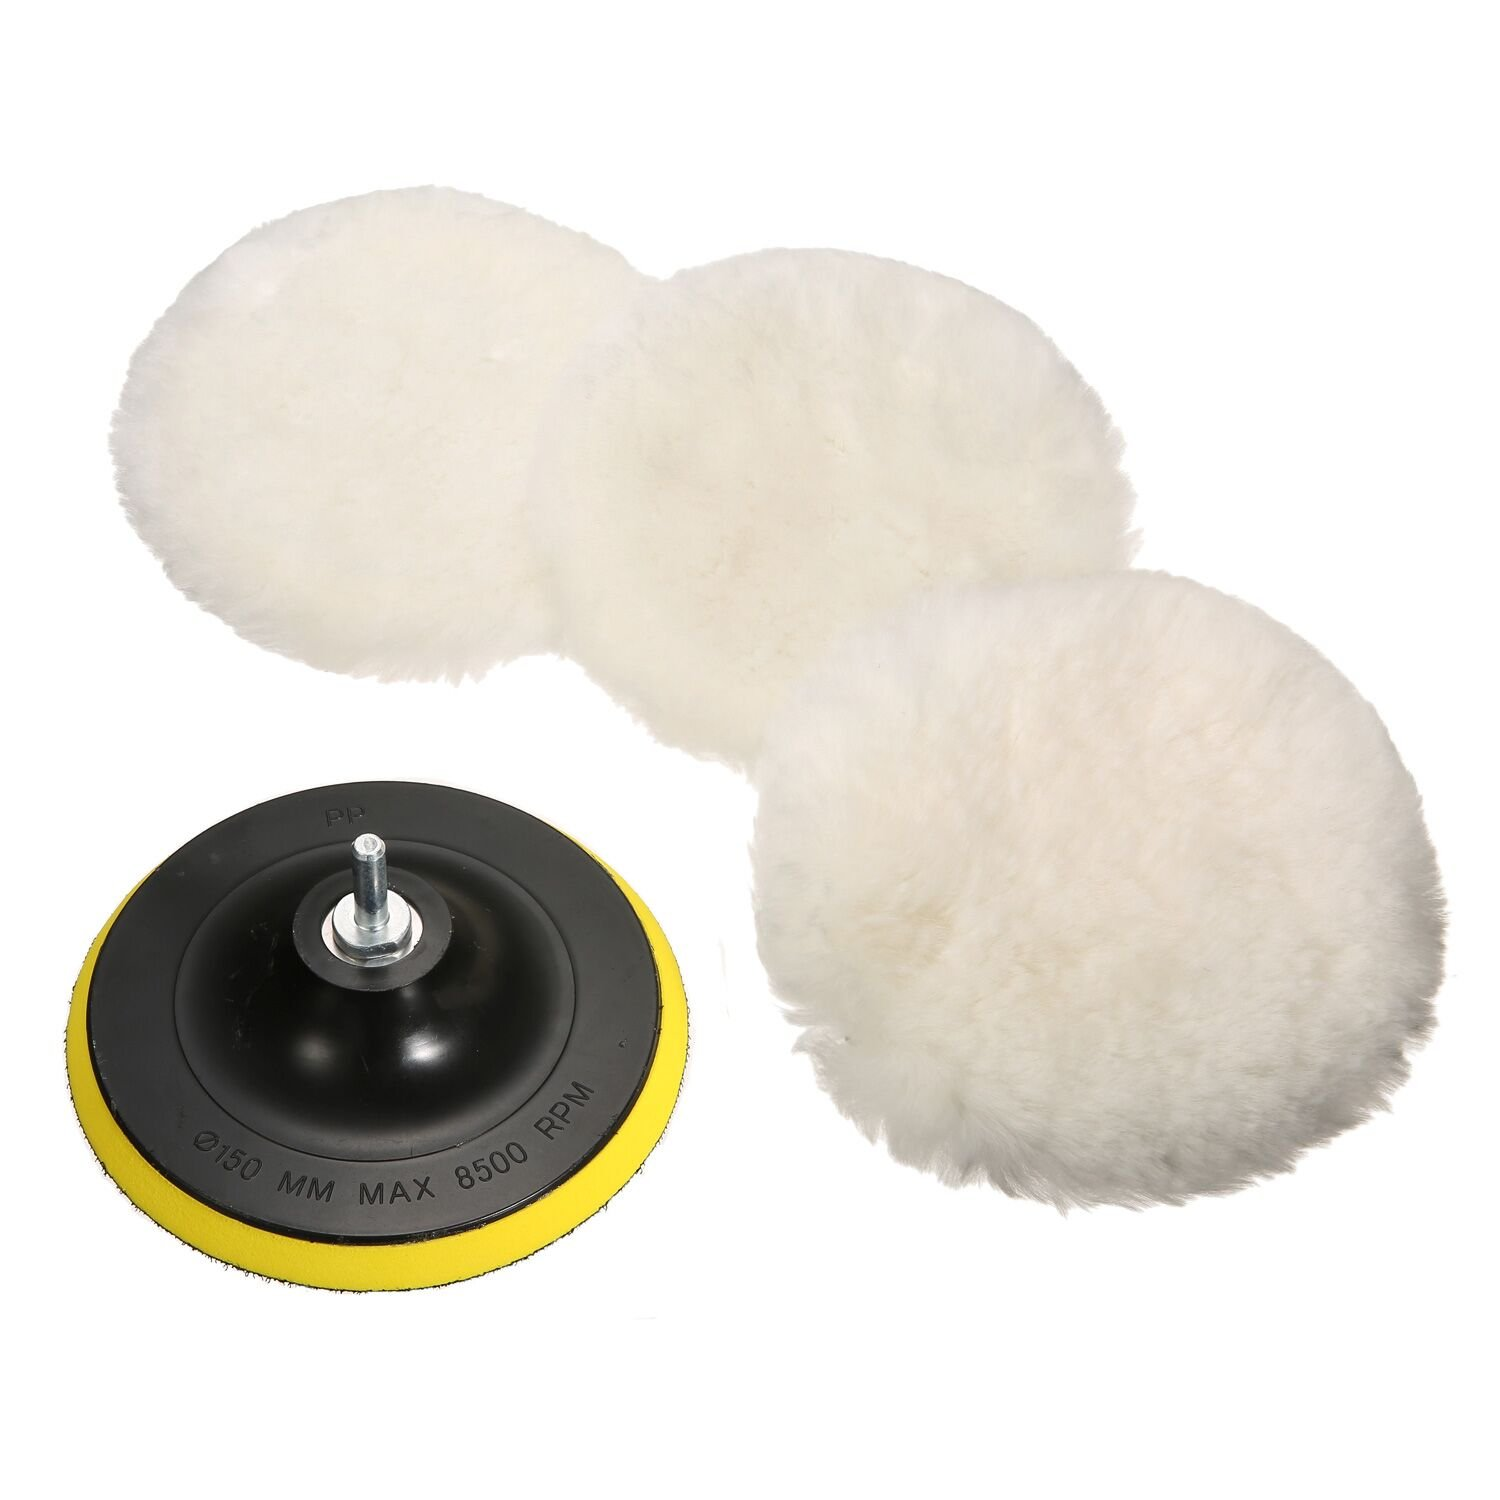 5Pcs 4Inches/6Inches/7Inches Polishing Buffer Wool Pads Fitted Liner M14 Drill Adapter  4-inch 100MM wool plate 5 piece set